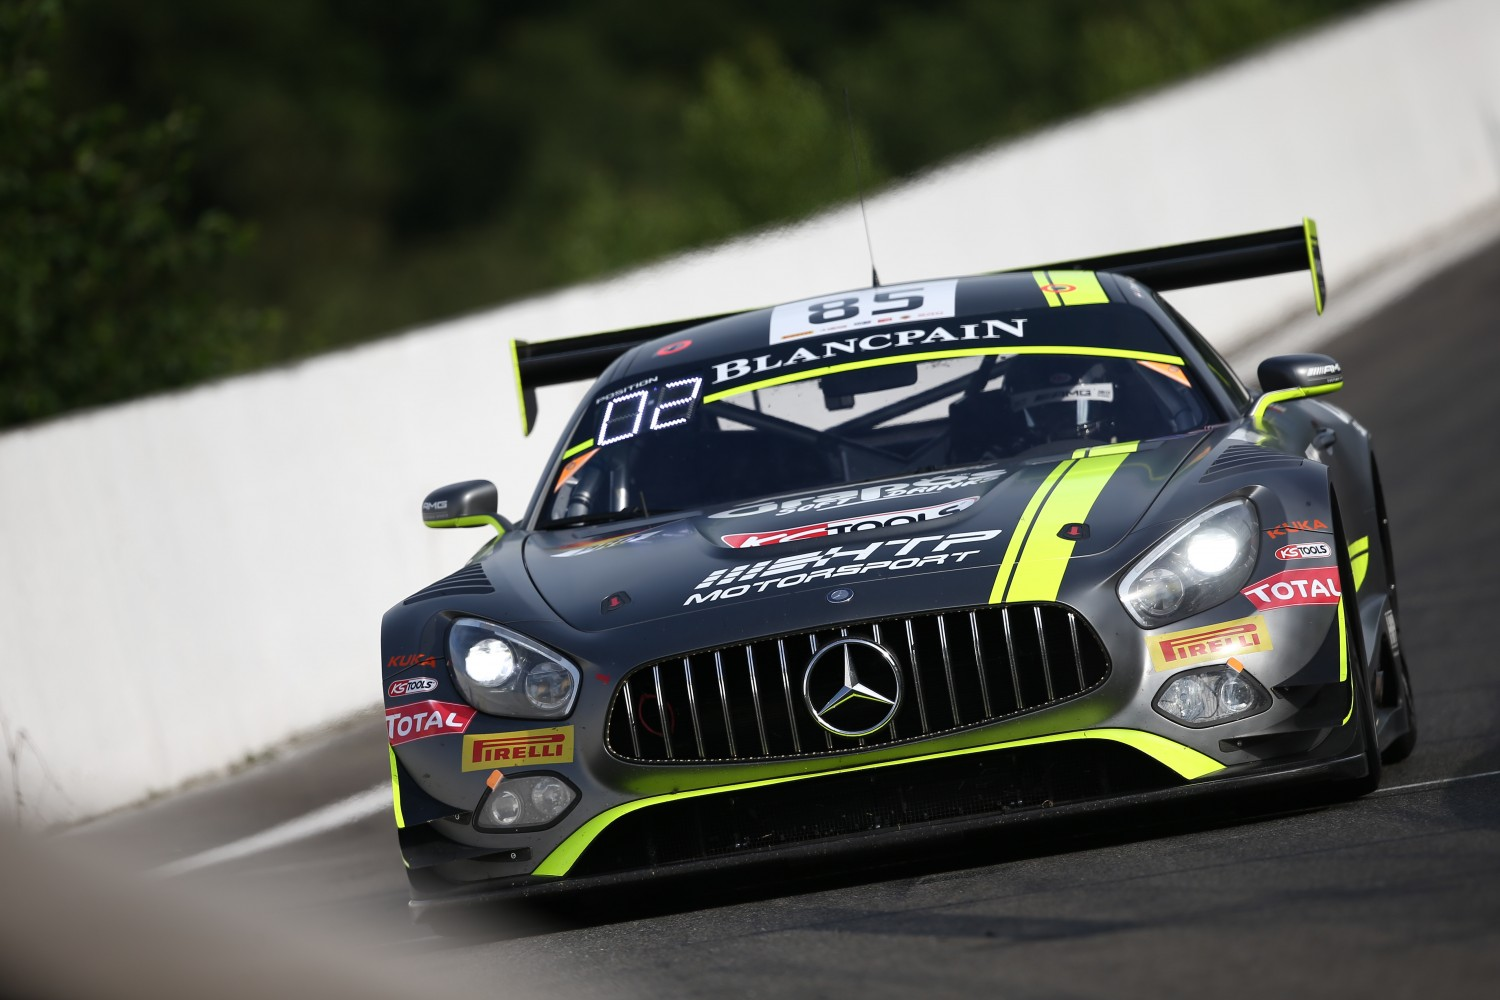 Mercedes-AMG takes pole for 2016 Total 24 Hours of Spa